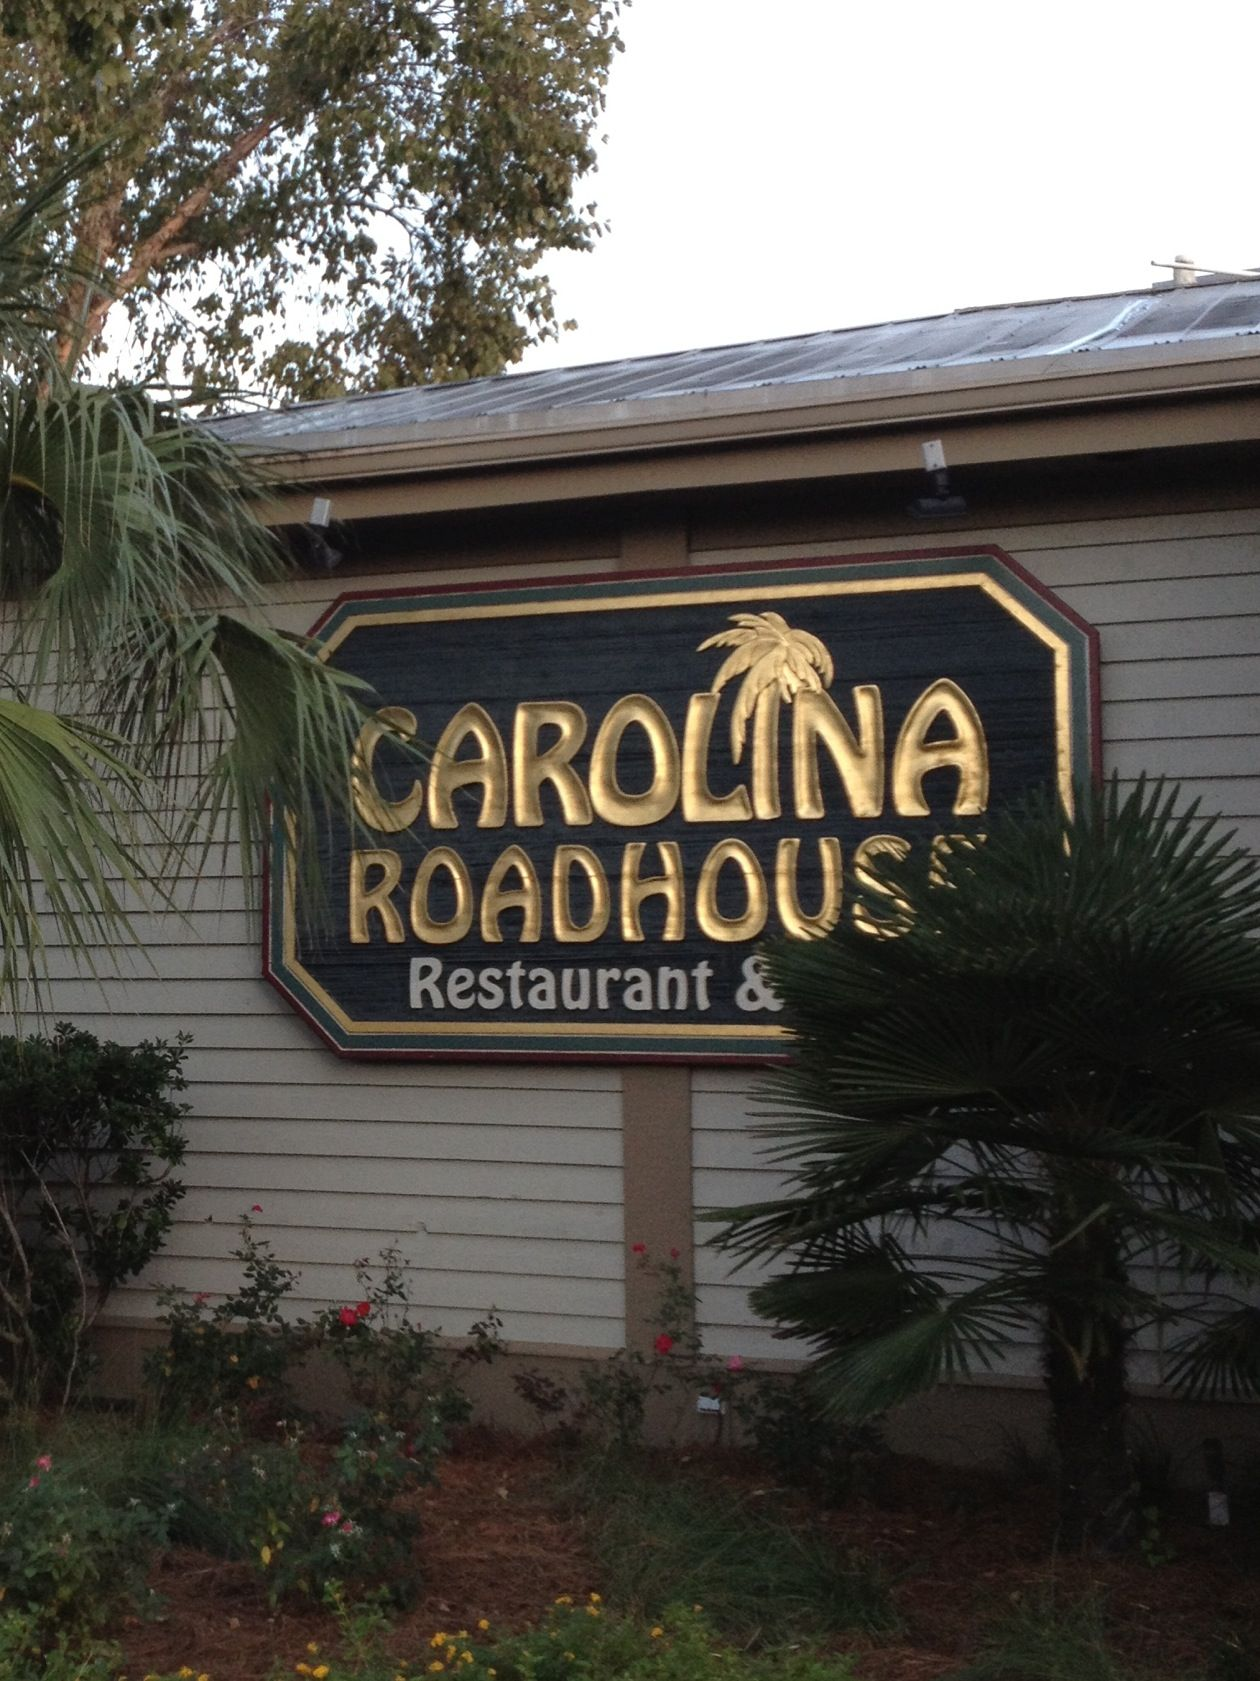 Carolina roadhouse my favorite restaurant with images